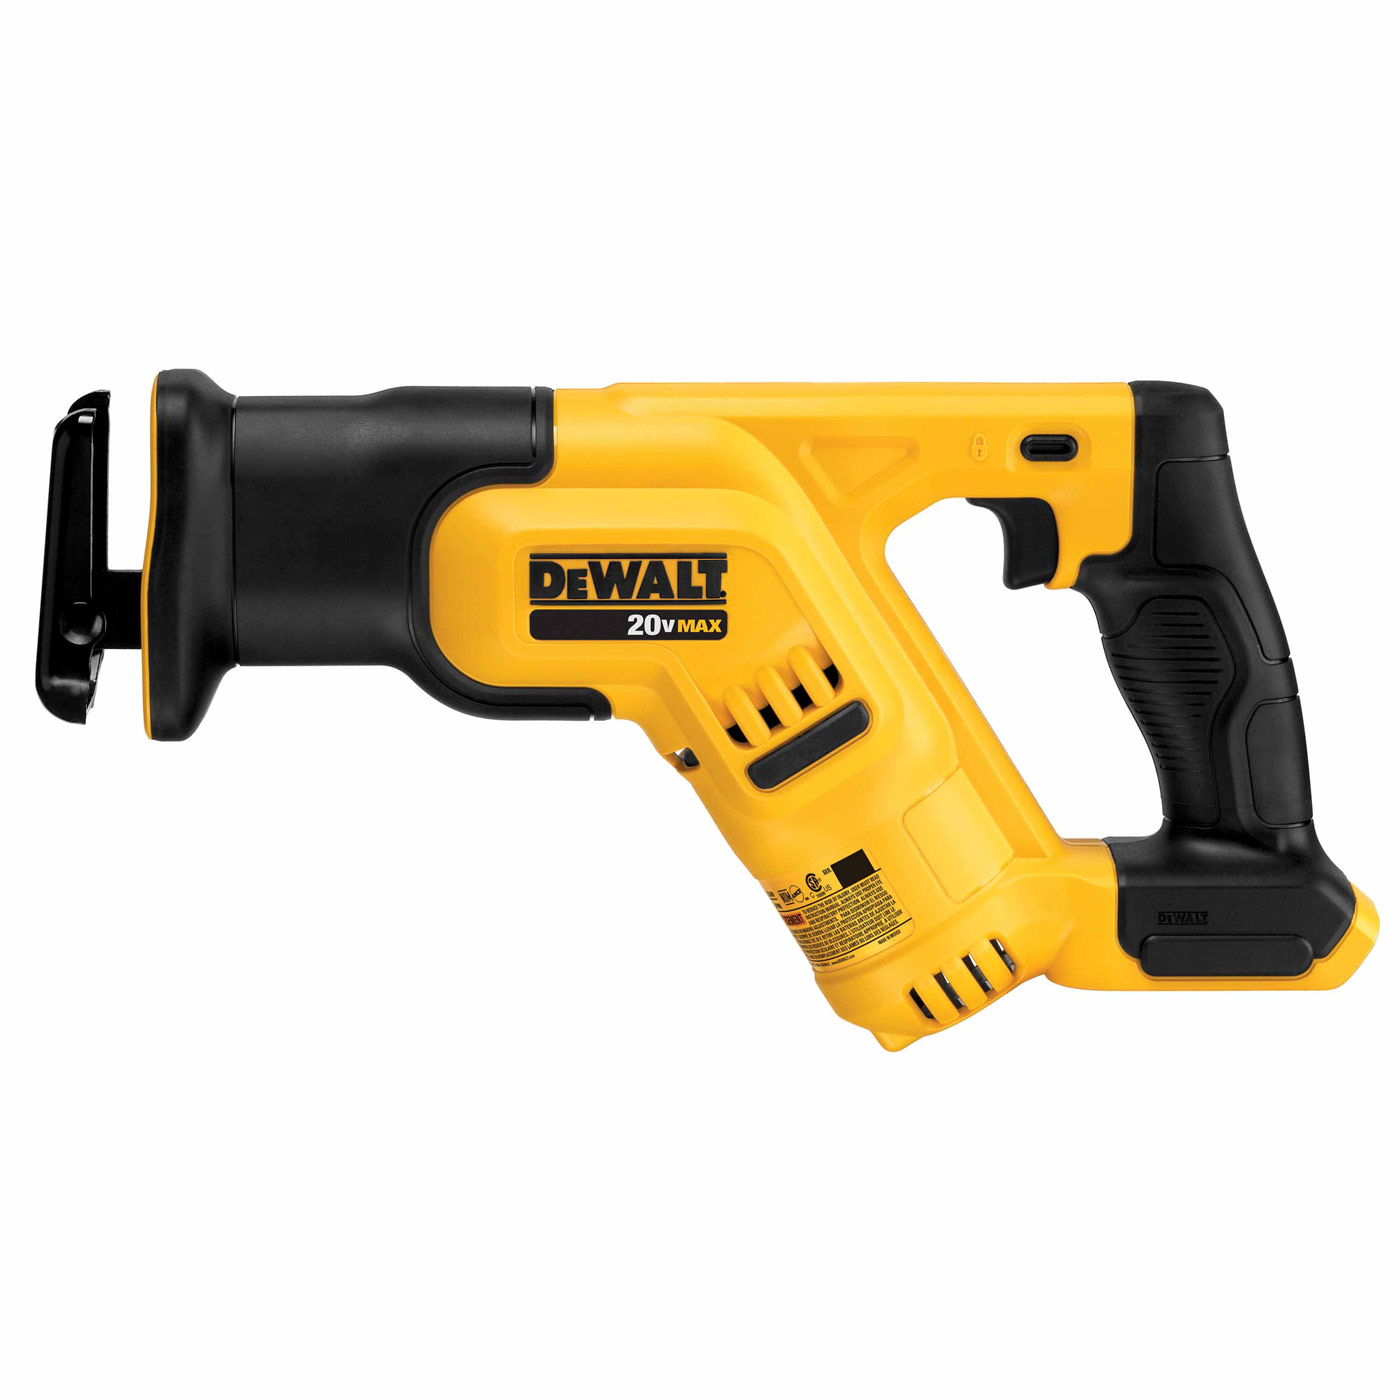 Dewalt DCS387B 20V MAX Compact Recip Saw Tool Only (Certified Refurbished)